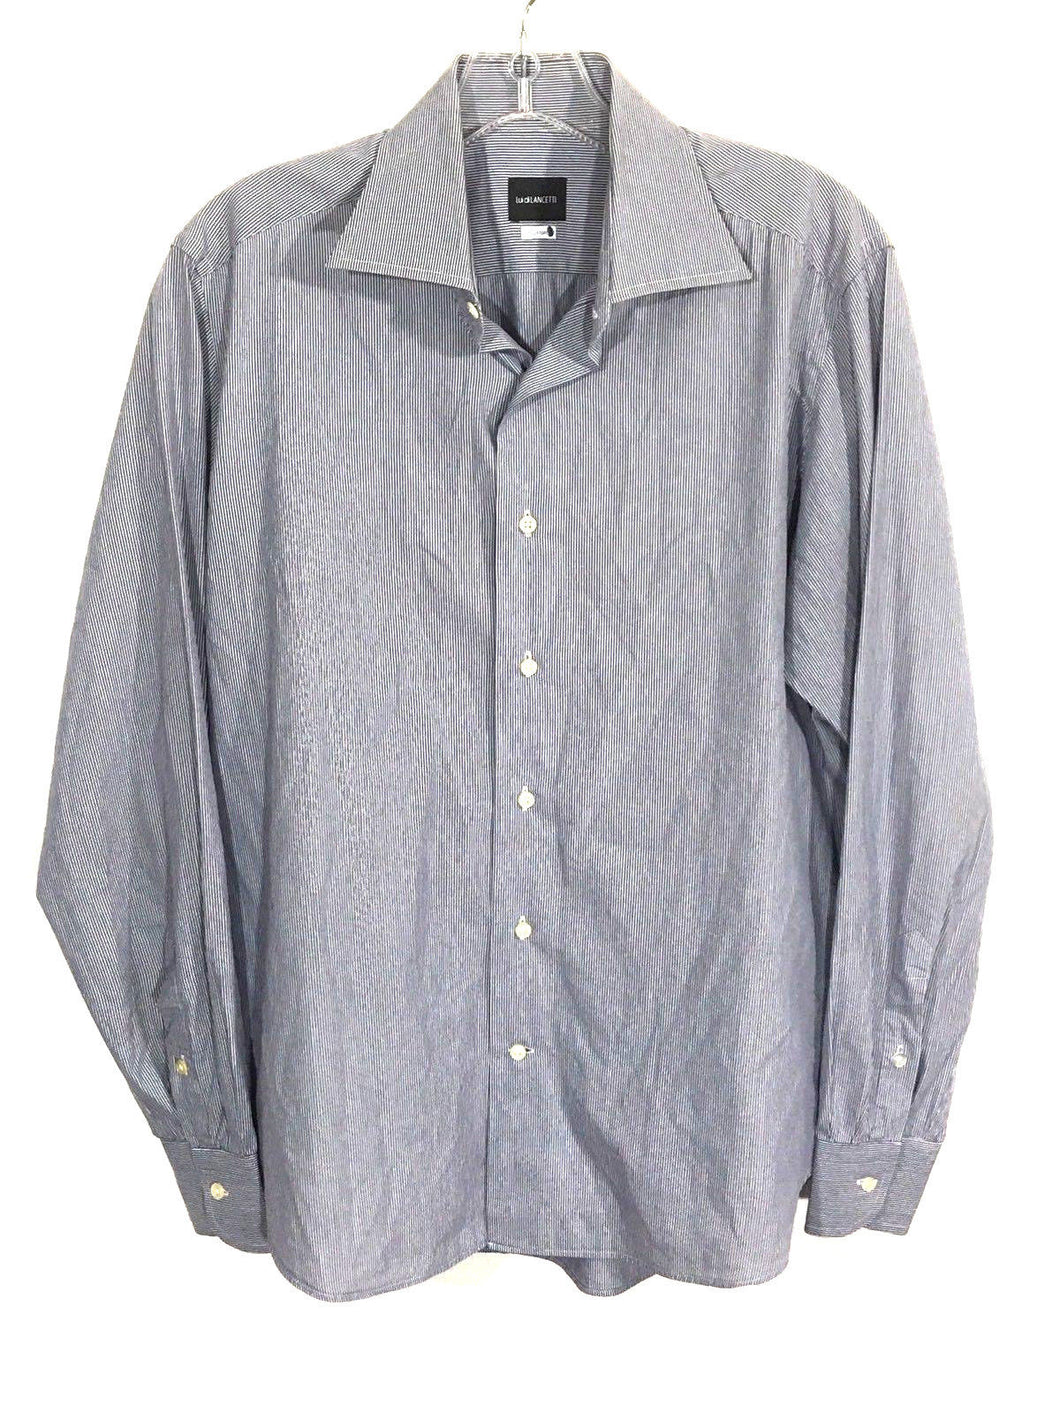 Lui di LANCETTI Custom Blue White Striped Button Down Dress Shirt Men 15 3/4-40 - Preowned - FunkyCrap Boutique